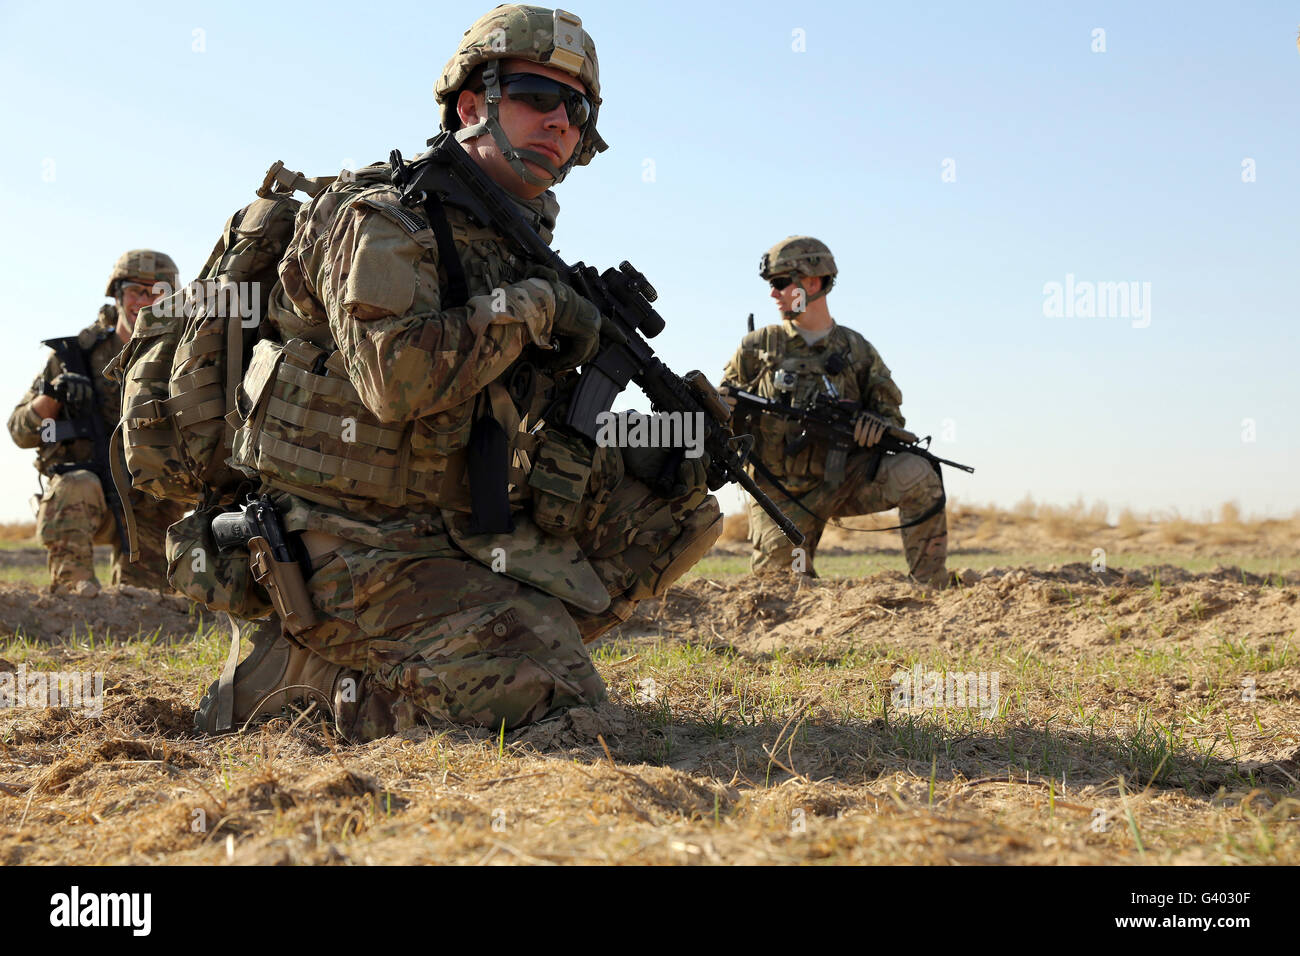 Petty officer takes a break with fellow team members. - Stock Image